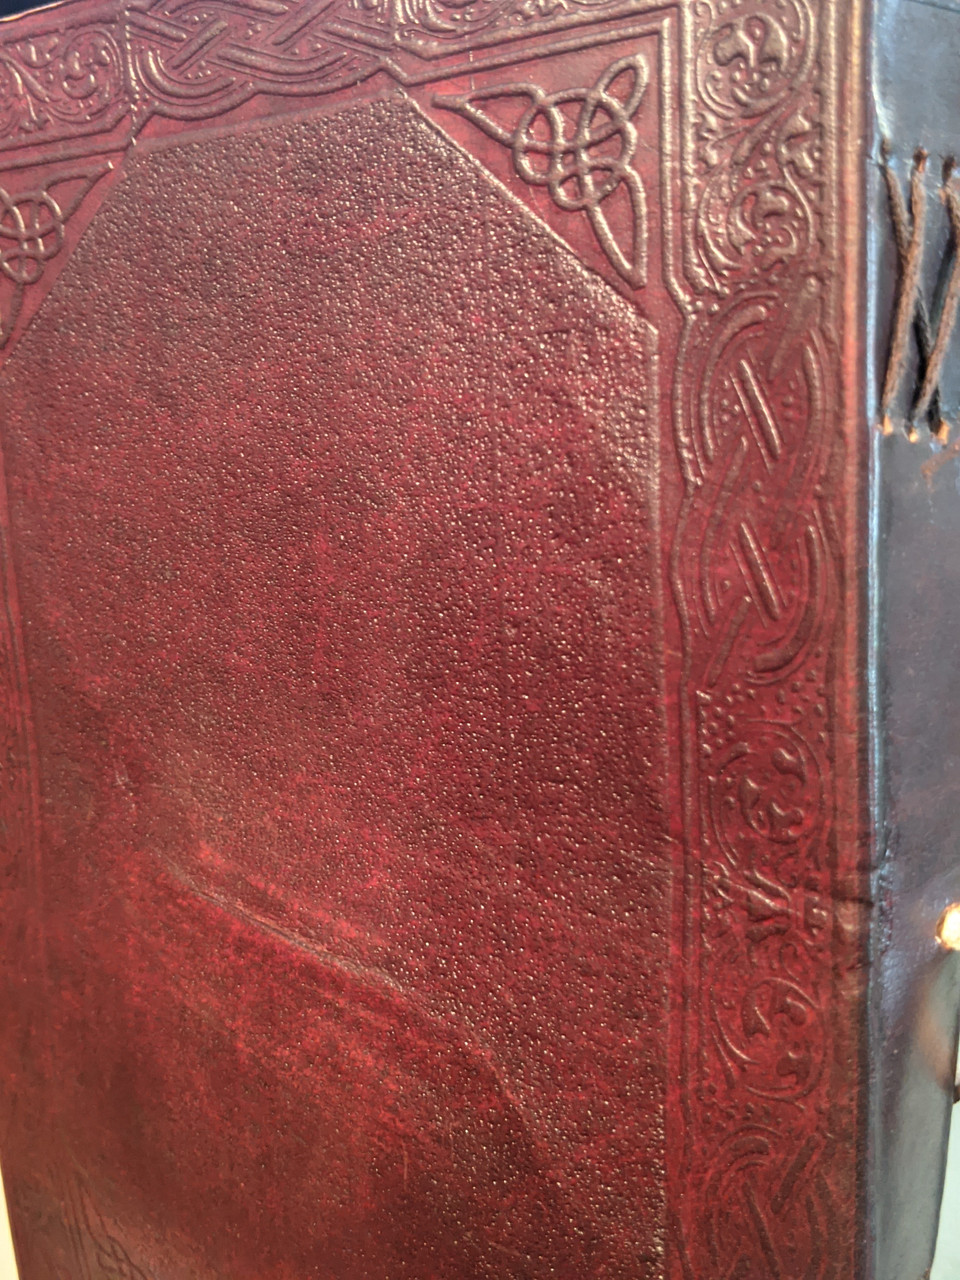 Rustic Celtic Cross Leather Journal 10 x 7